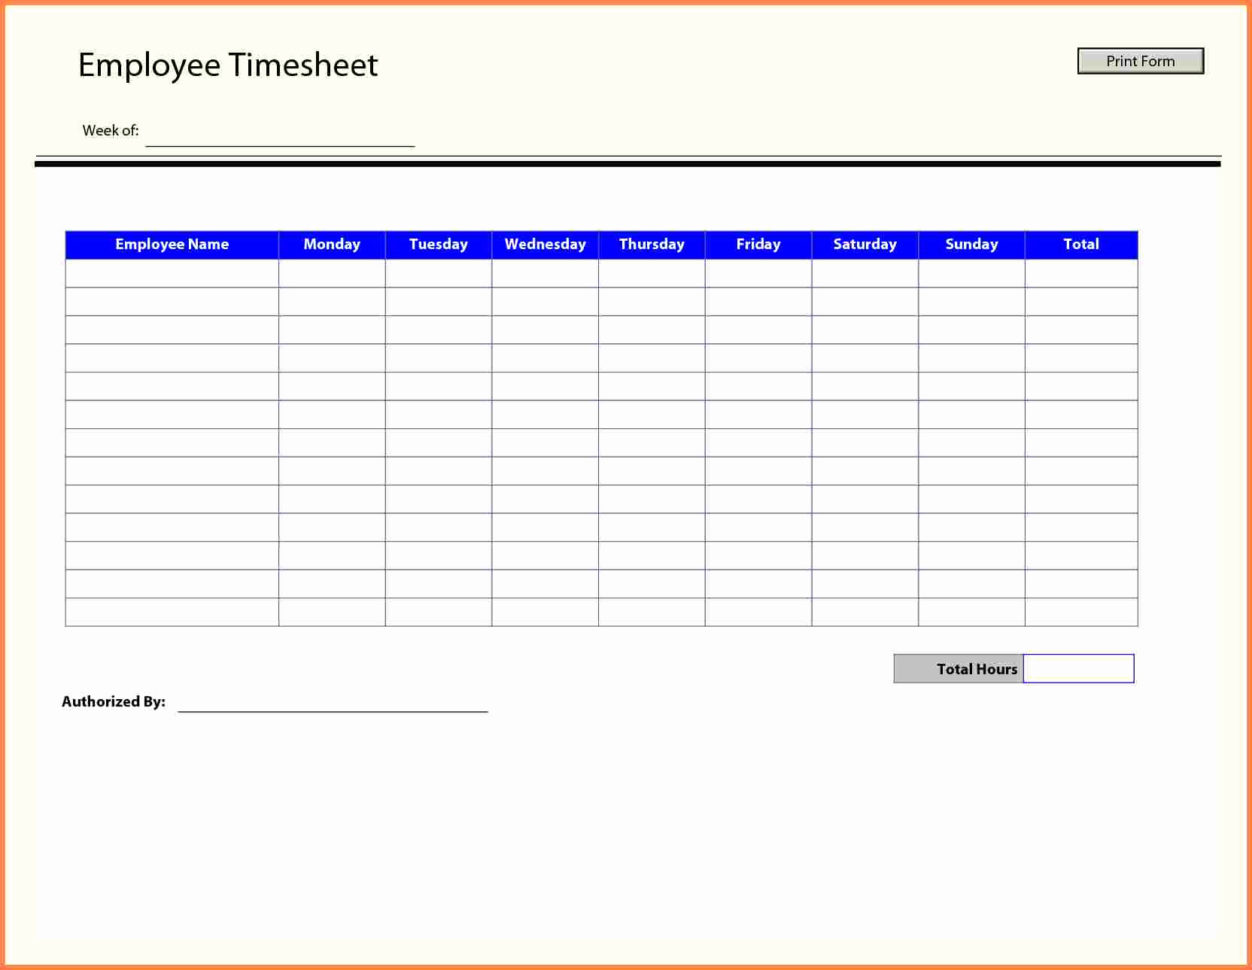 Vacation Time Tracking Spreadsheet Inspirational Time Tracking And Employee Time Tracking Excel Template